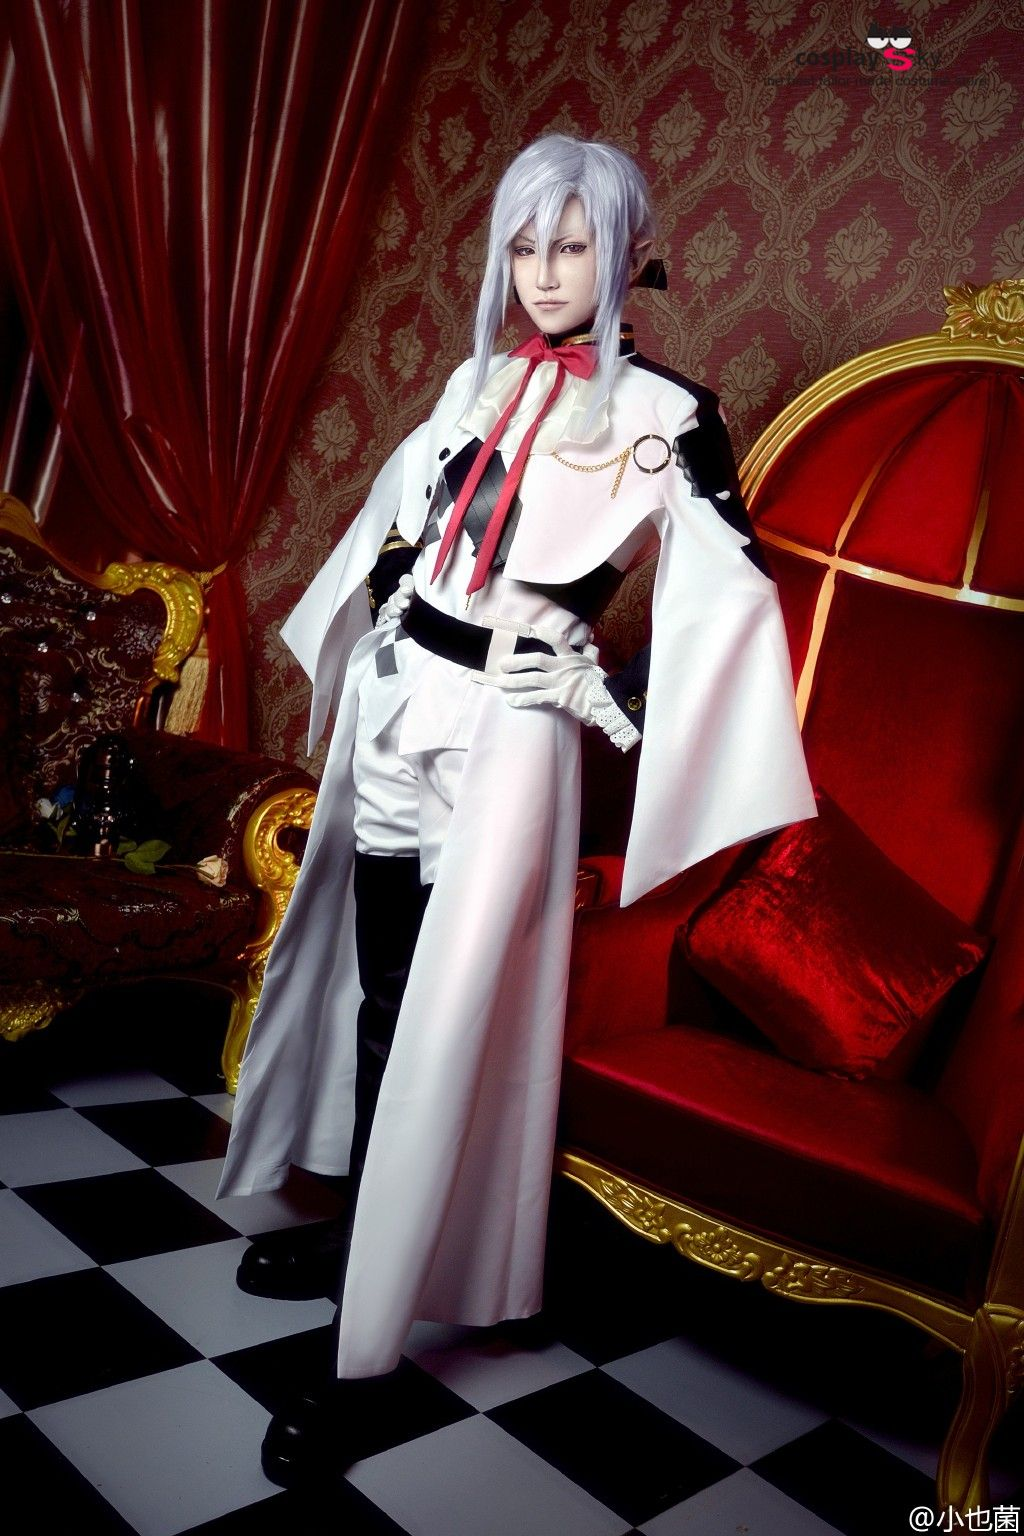 Anime Seraph of the End//Owari no Seraph Cosplay Ferid Bathory Wig Hair